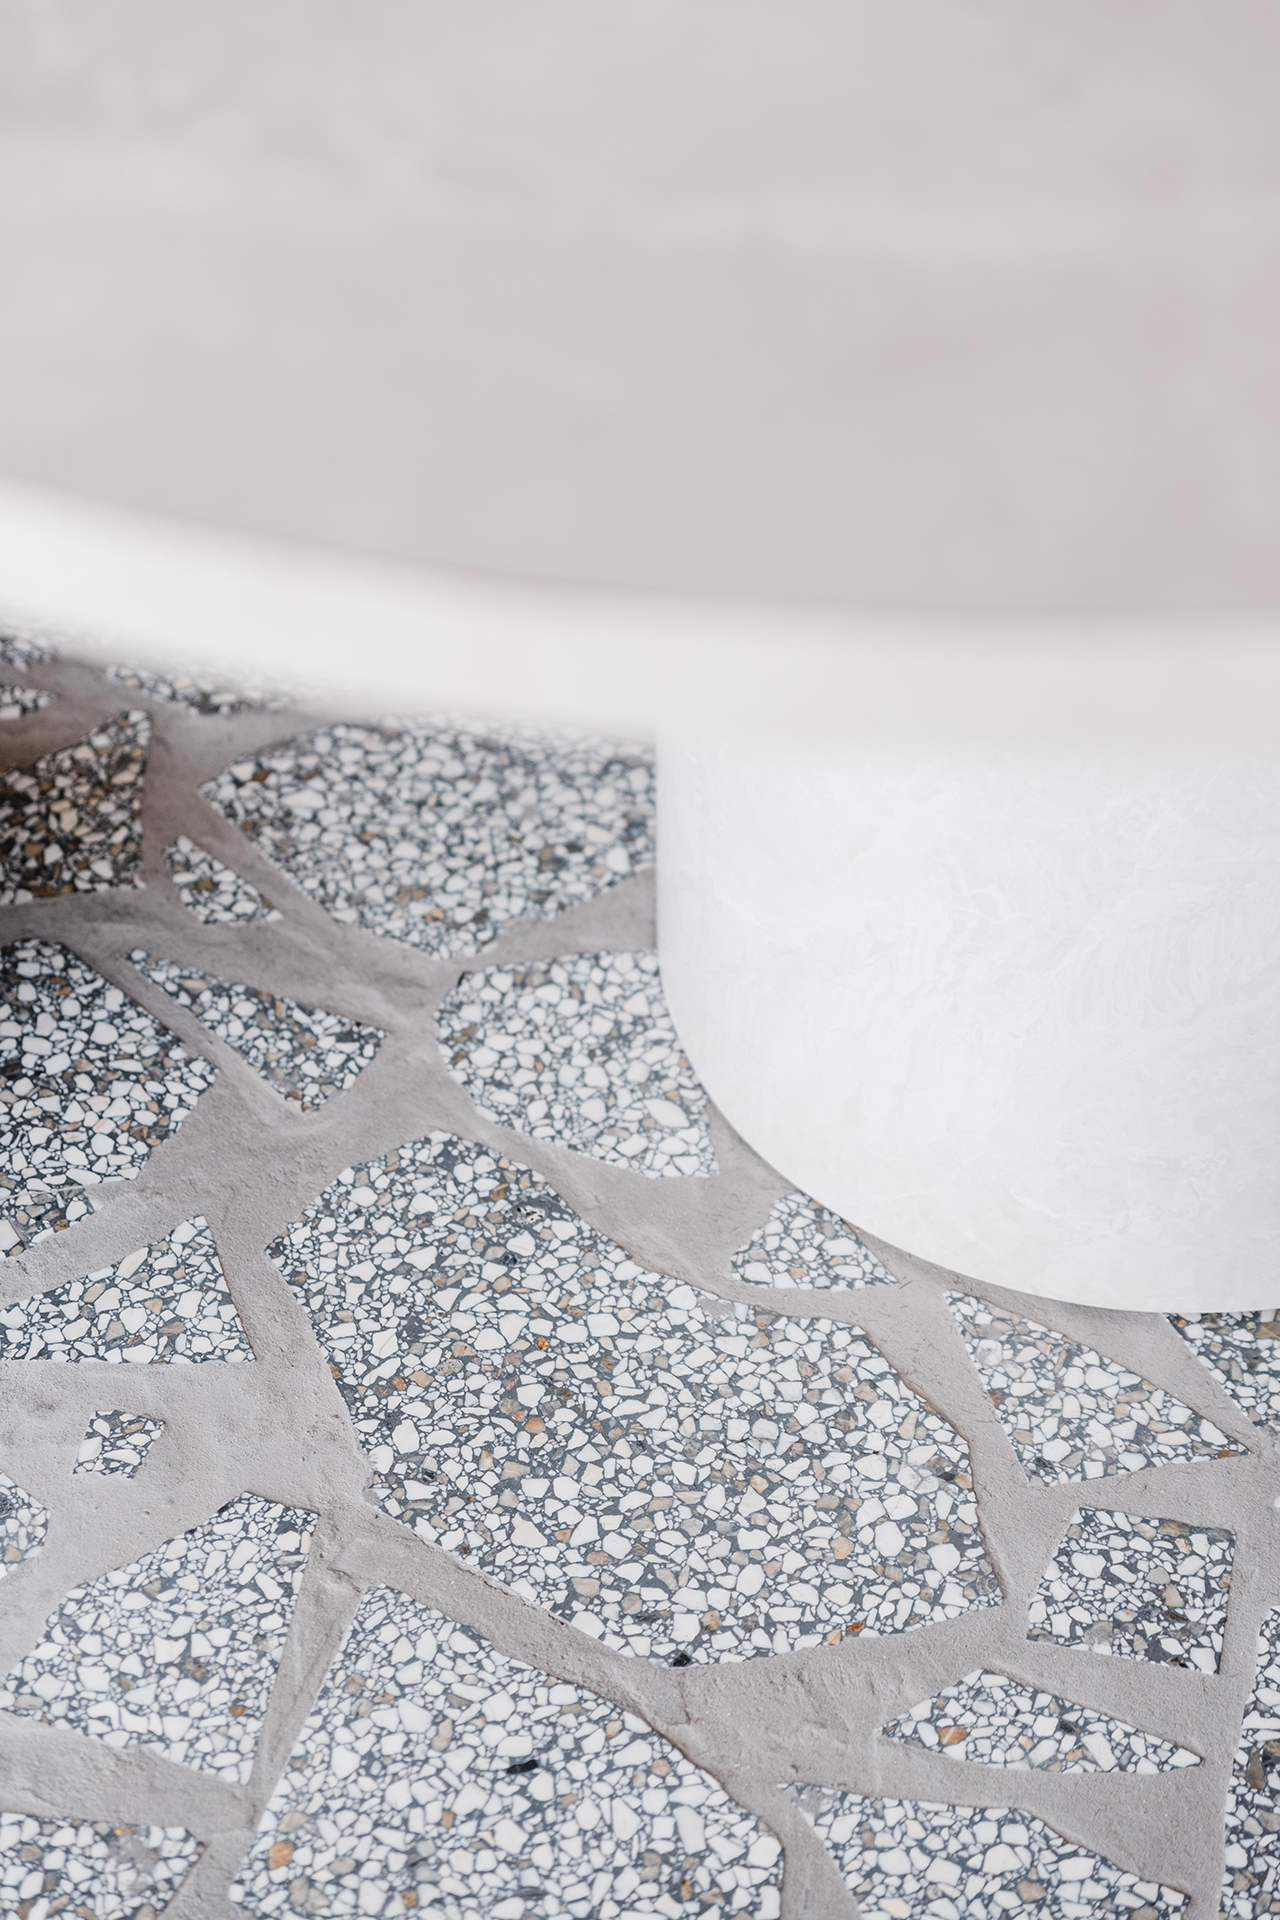 Crazy pave flooring close up